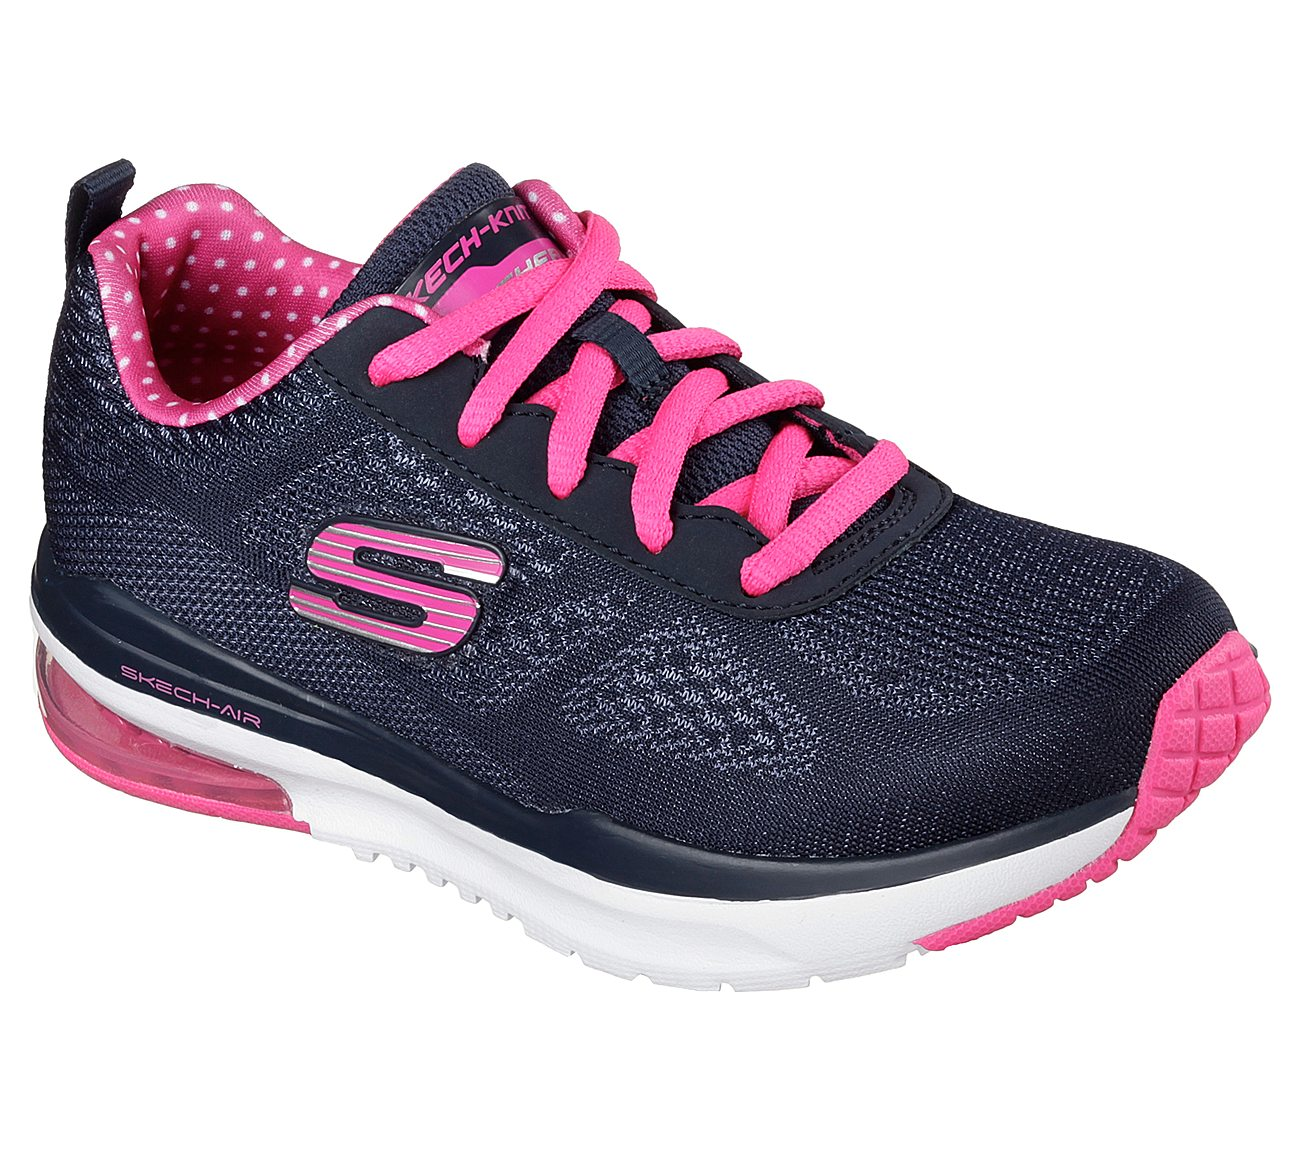 a579a0a5d421 Buy SKECHERS Skech-Air Infinity Training Shoes Shoes only  37.00